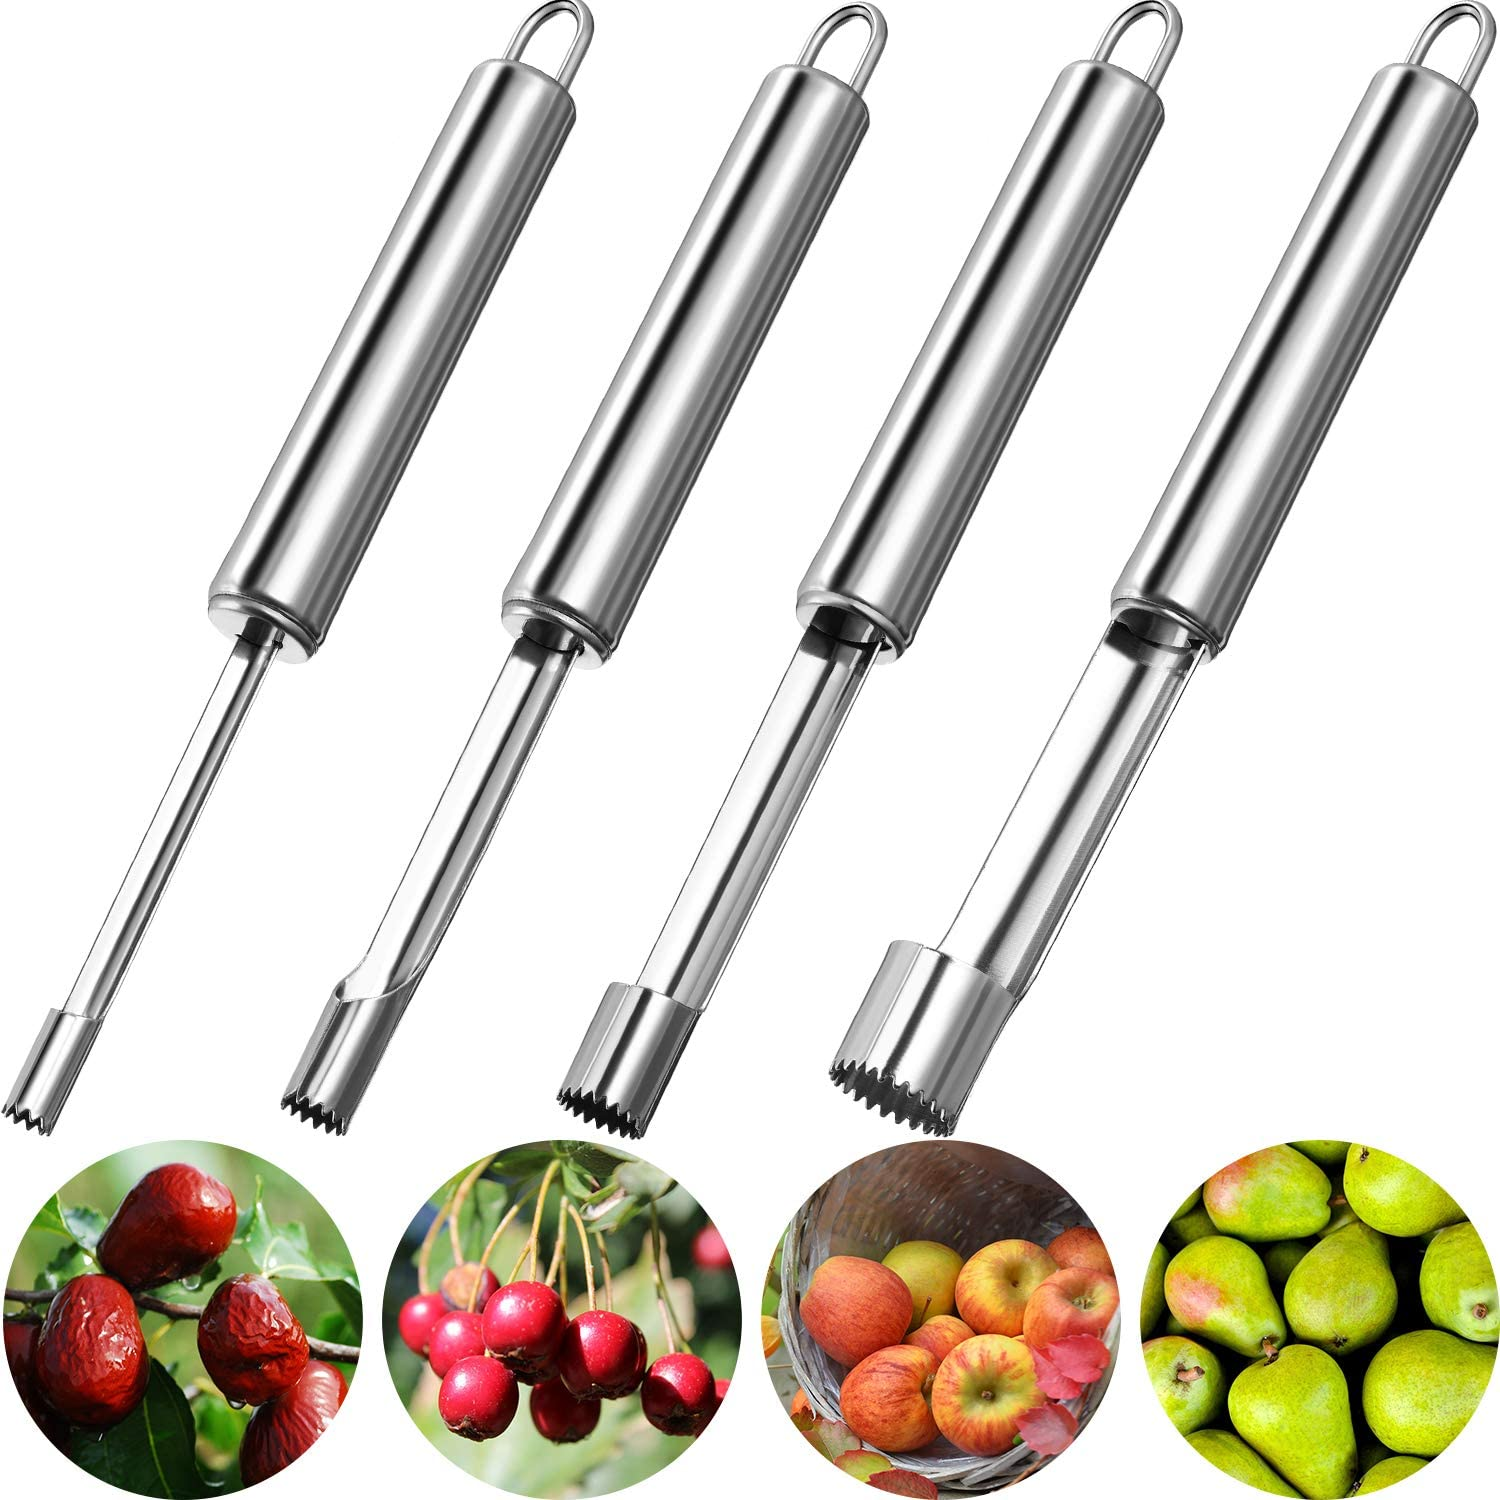 Mudder 4 Pieces Corer and Pitter Multi-Function Fruit Corer and Pitter Remover Set Stainless Steel Pear Corer Pitter 4 Sizes for Home Kitchen, Pear, Cherry, Jujube and Red Date